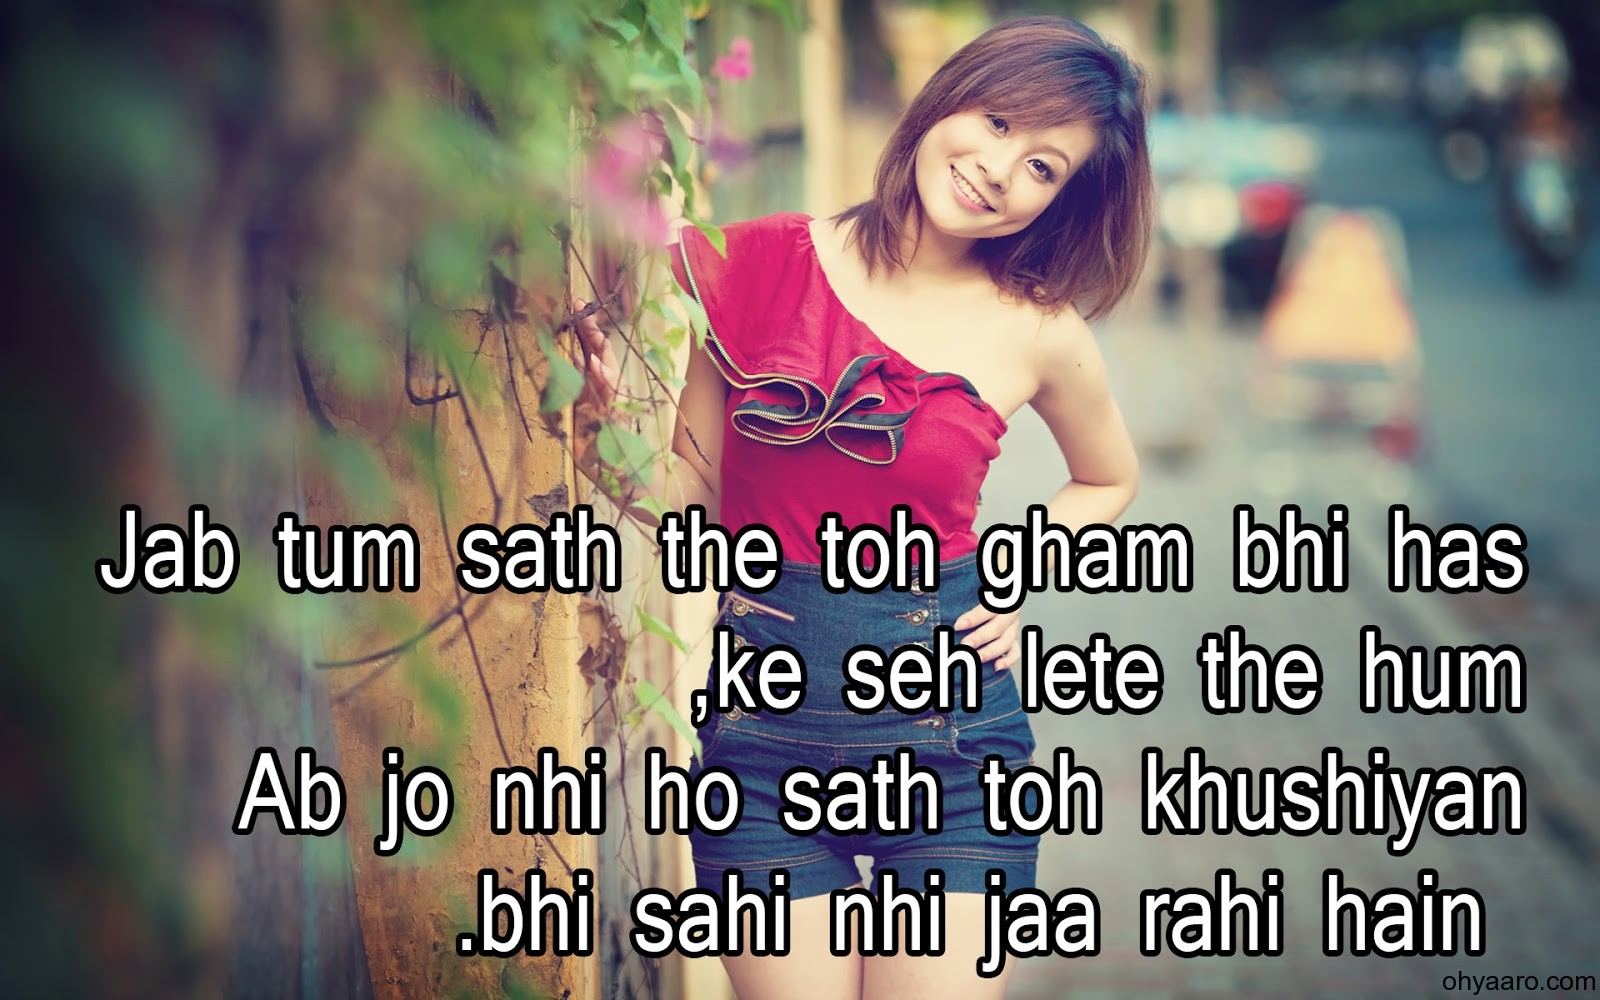 Sad Shayari Status For Girls - Sad Shayari Wallpaper - Sad